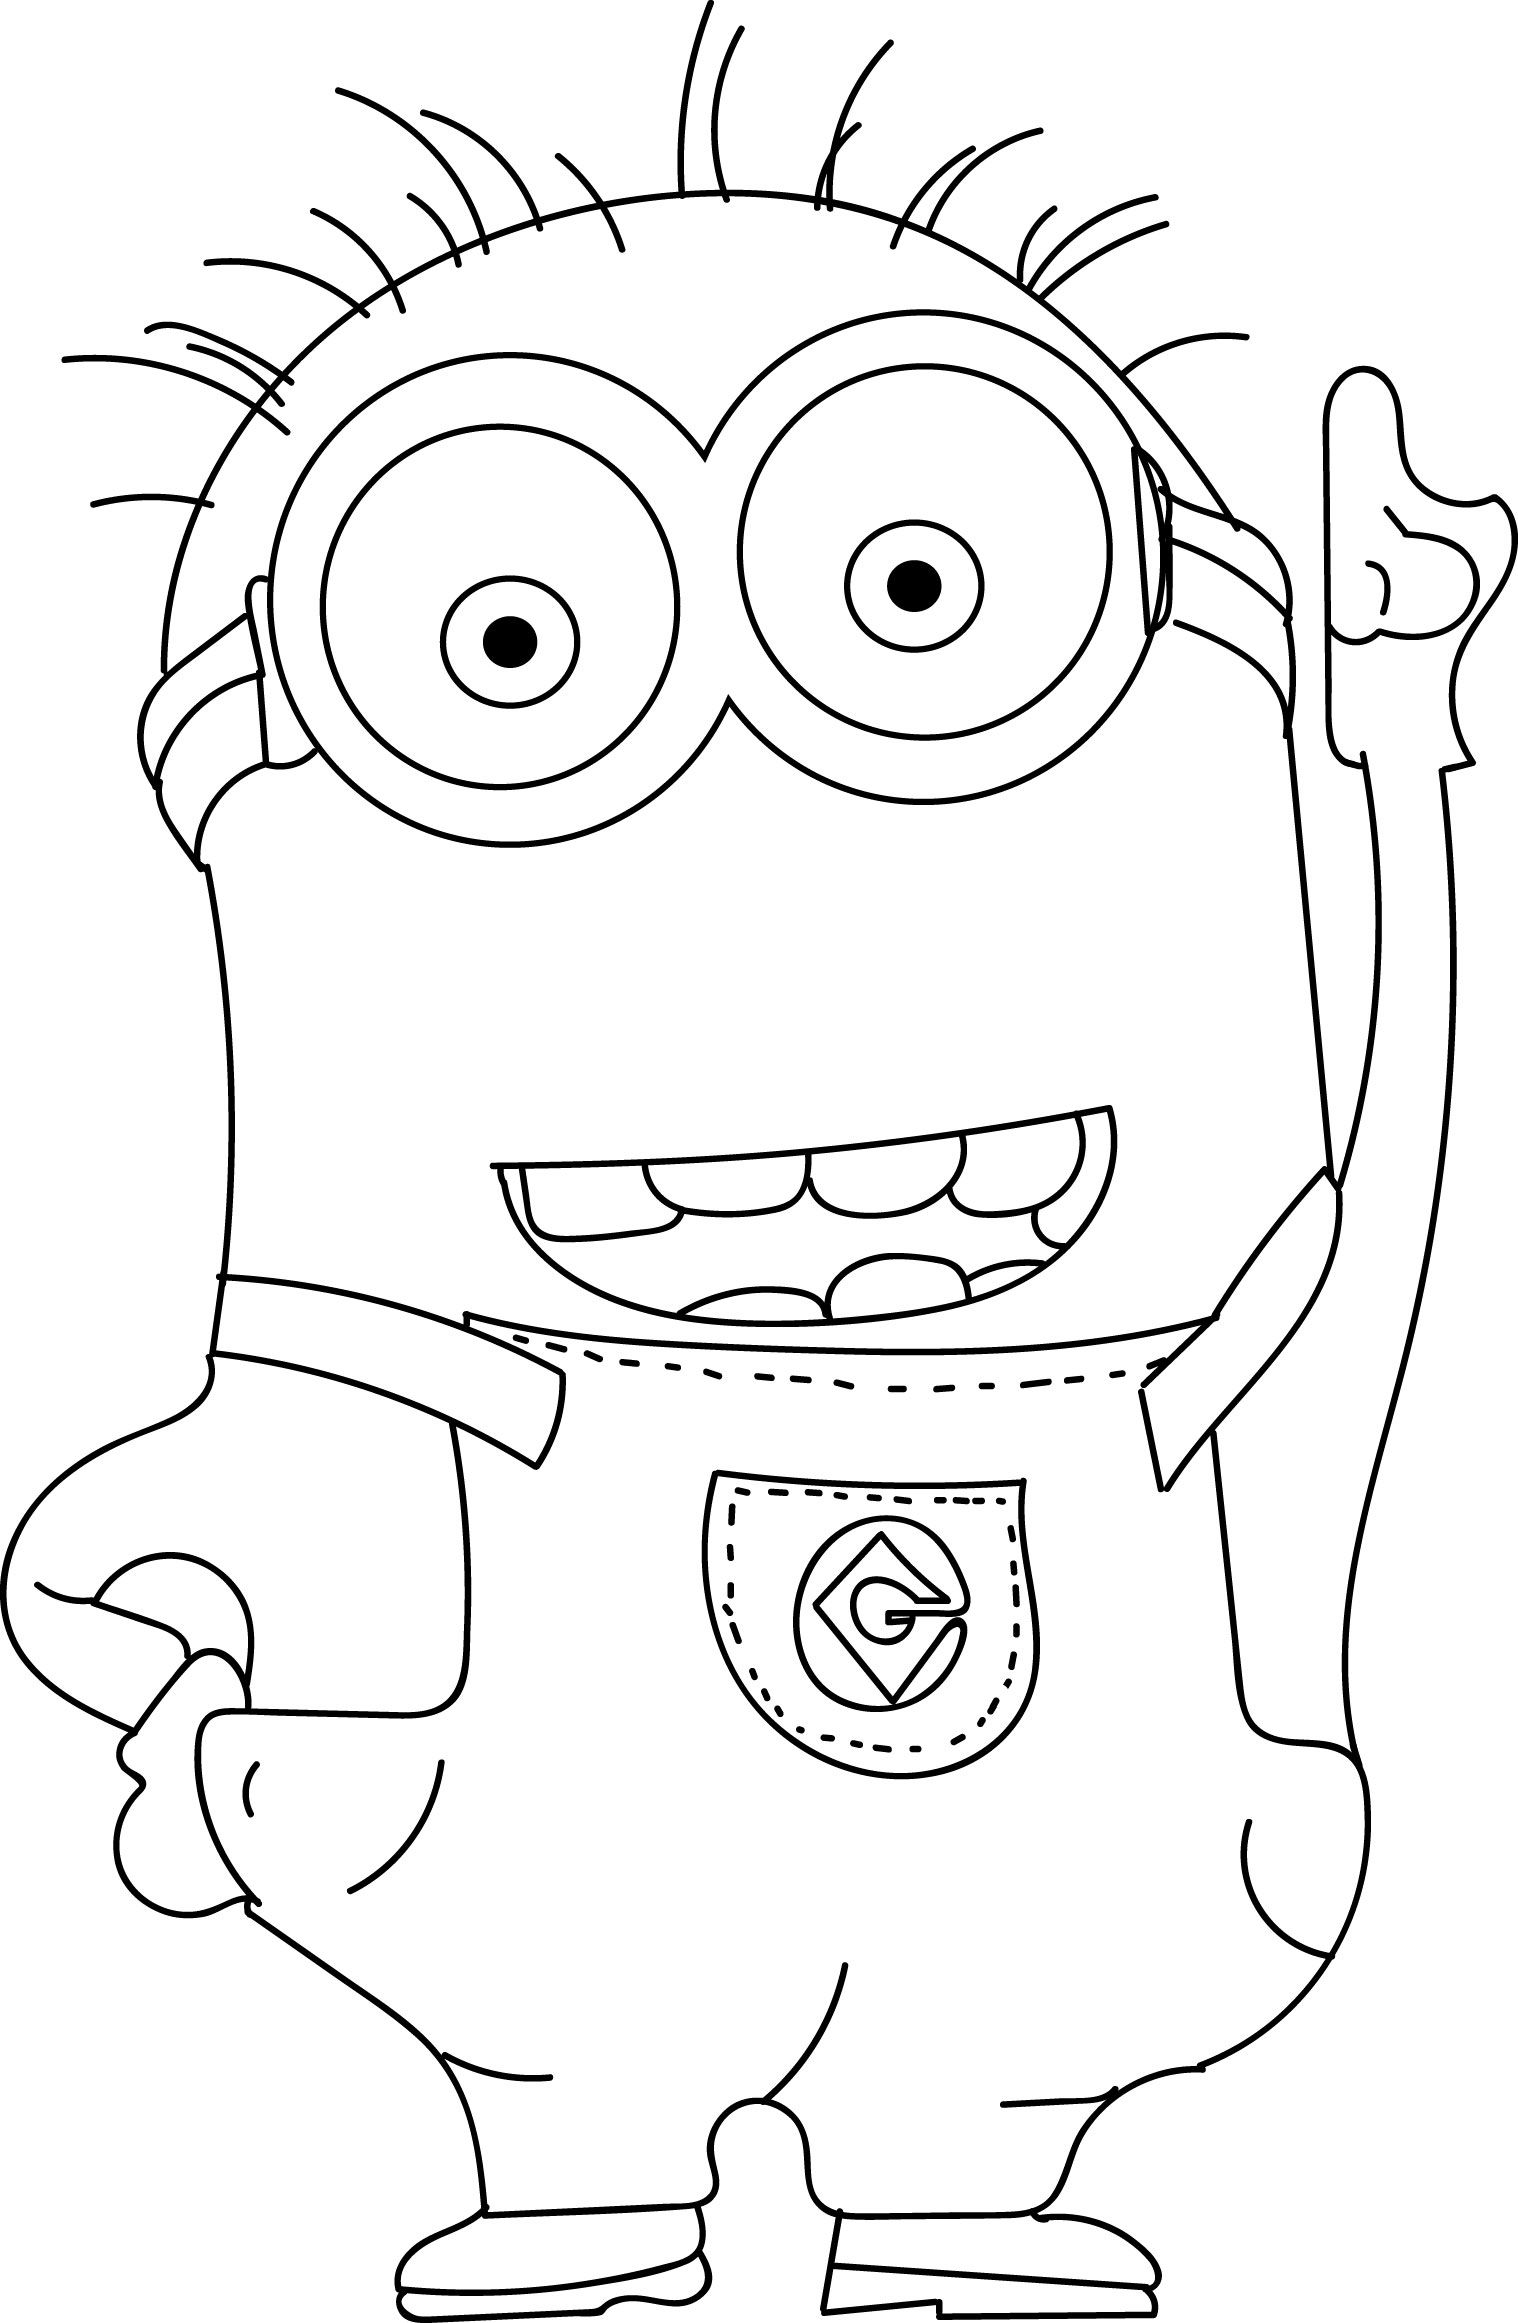 minion printable fun learn free worksheets for kid minions free printable minion